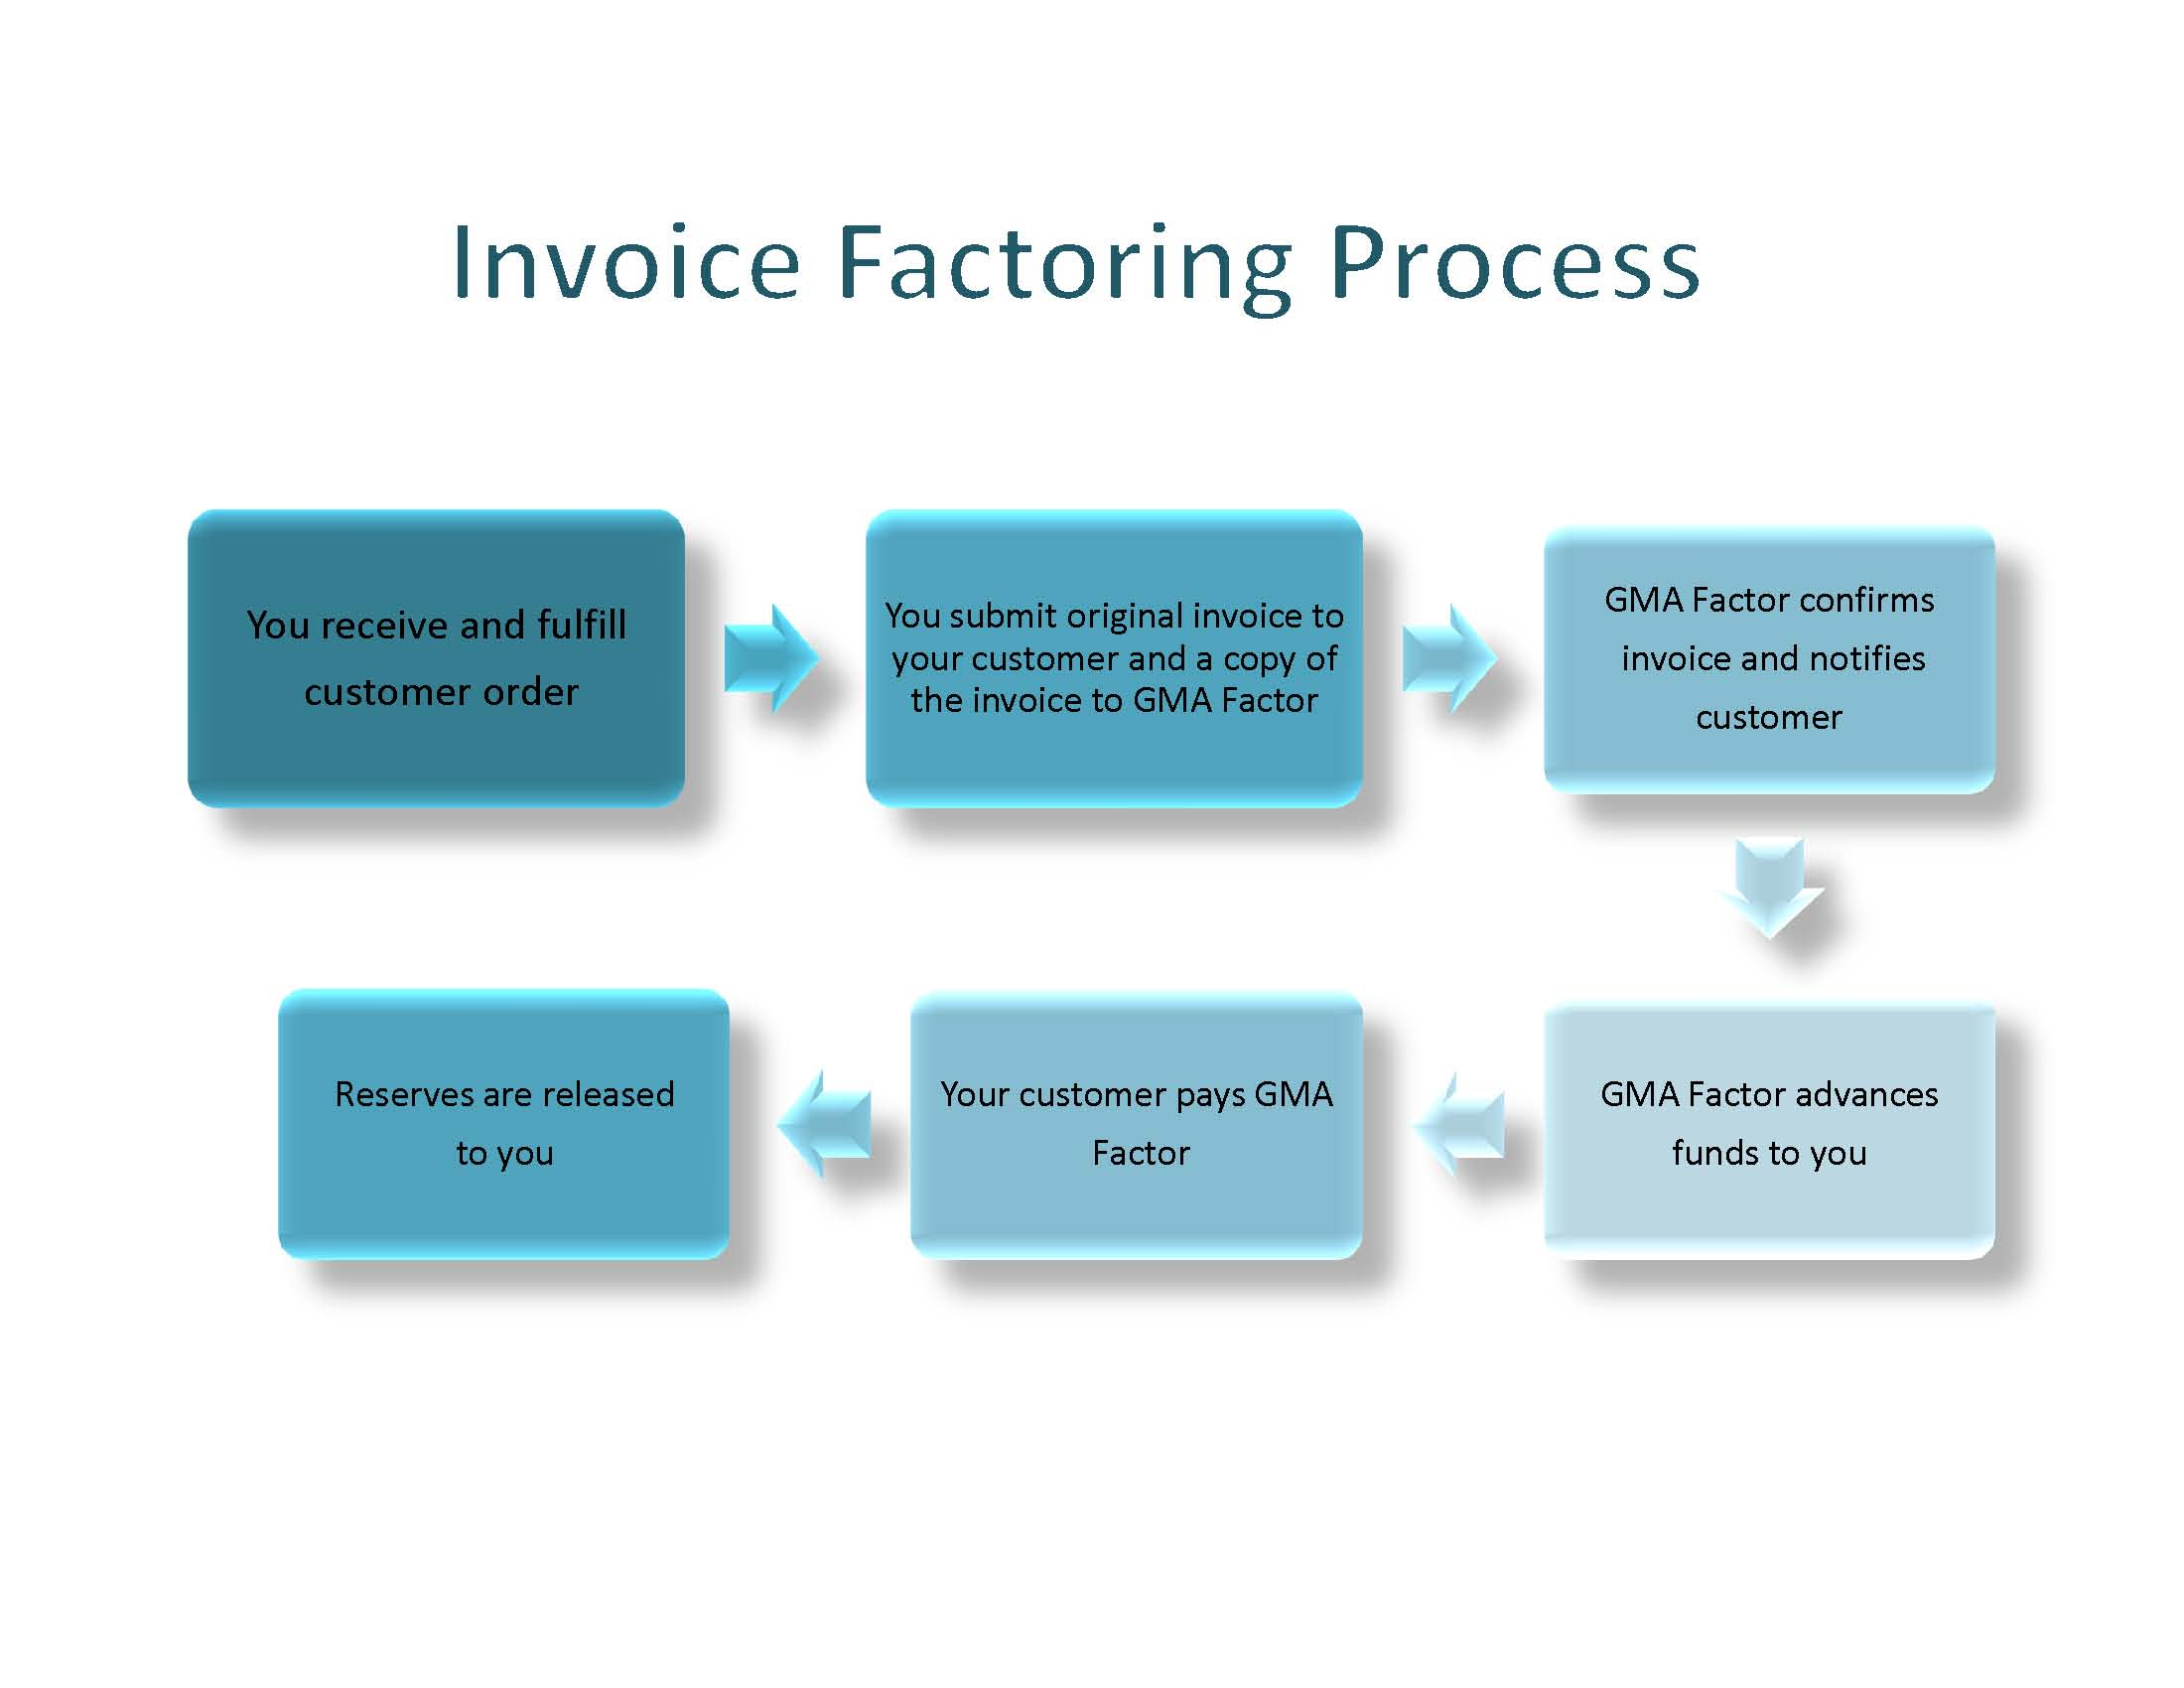 Invoice Factoring Process - What is invoice factoring